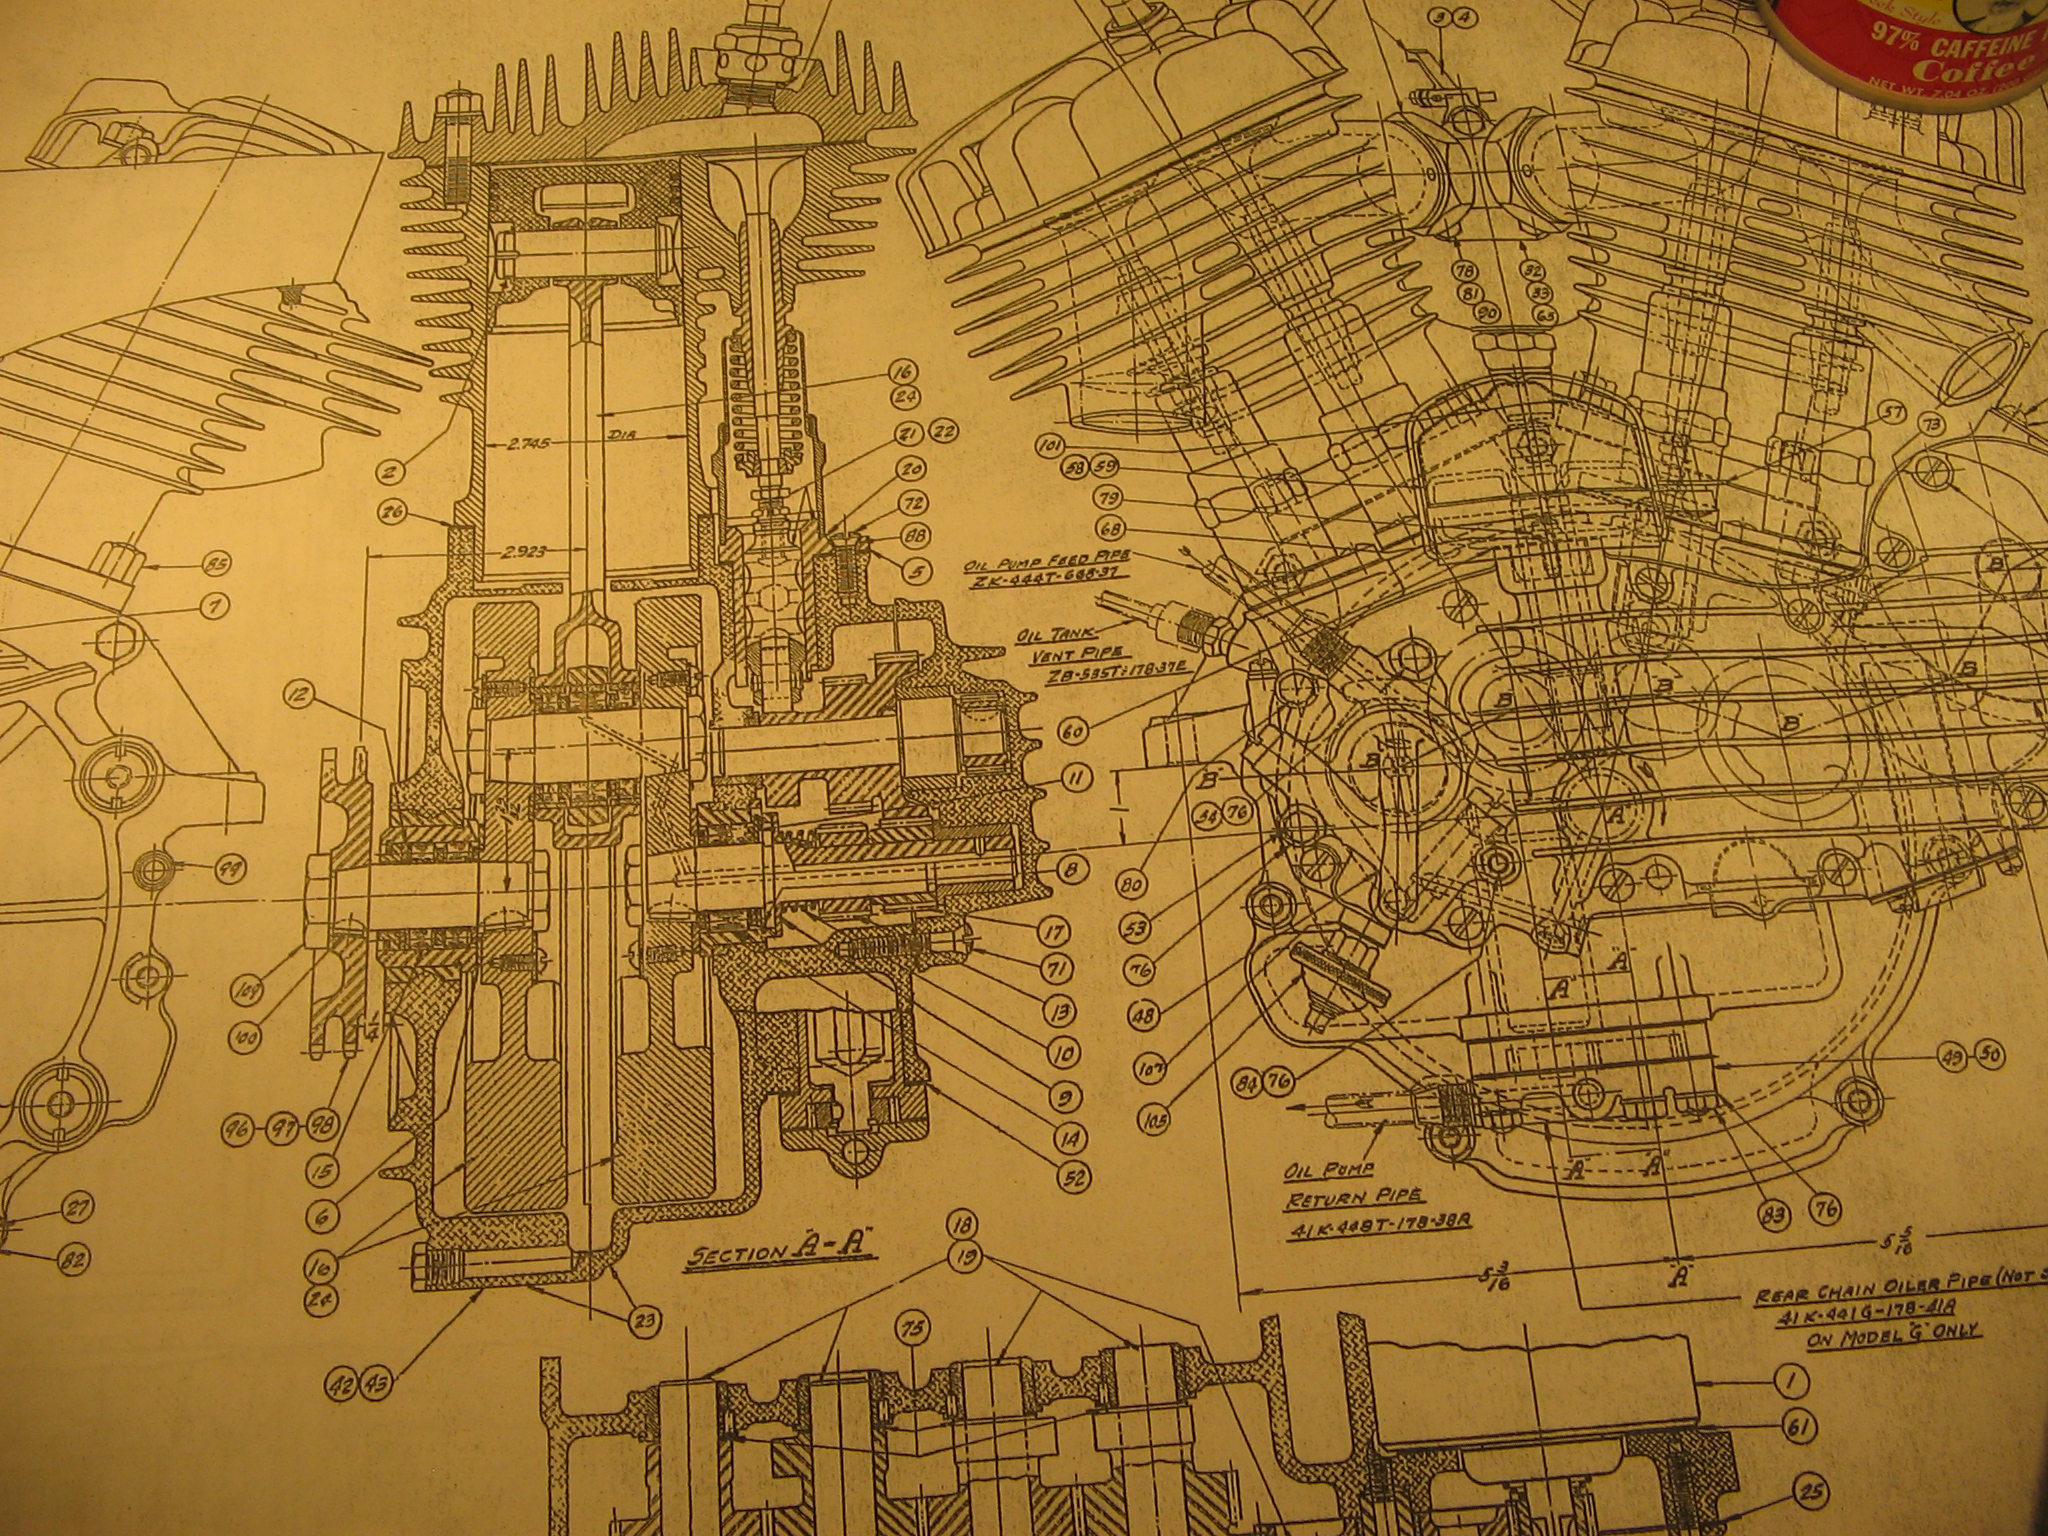 1930 Harley Davidson Engine Diagram Free Download Wiring Diagrams Folktales Jackienoname Weblog 32 At Transmission